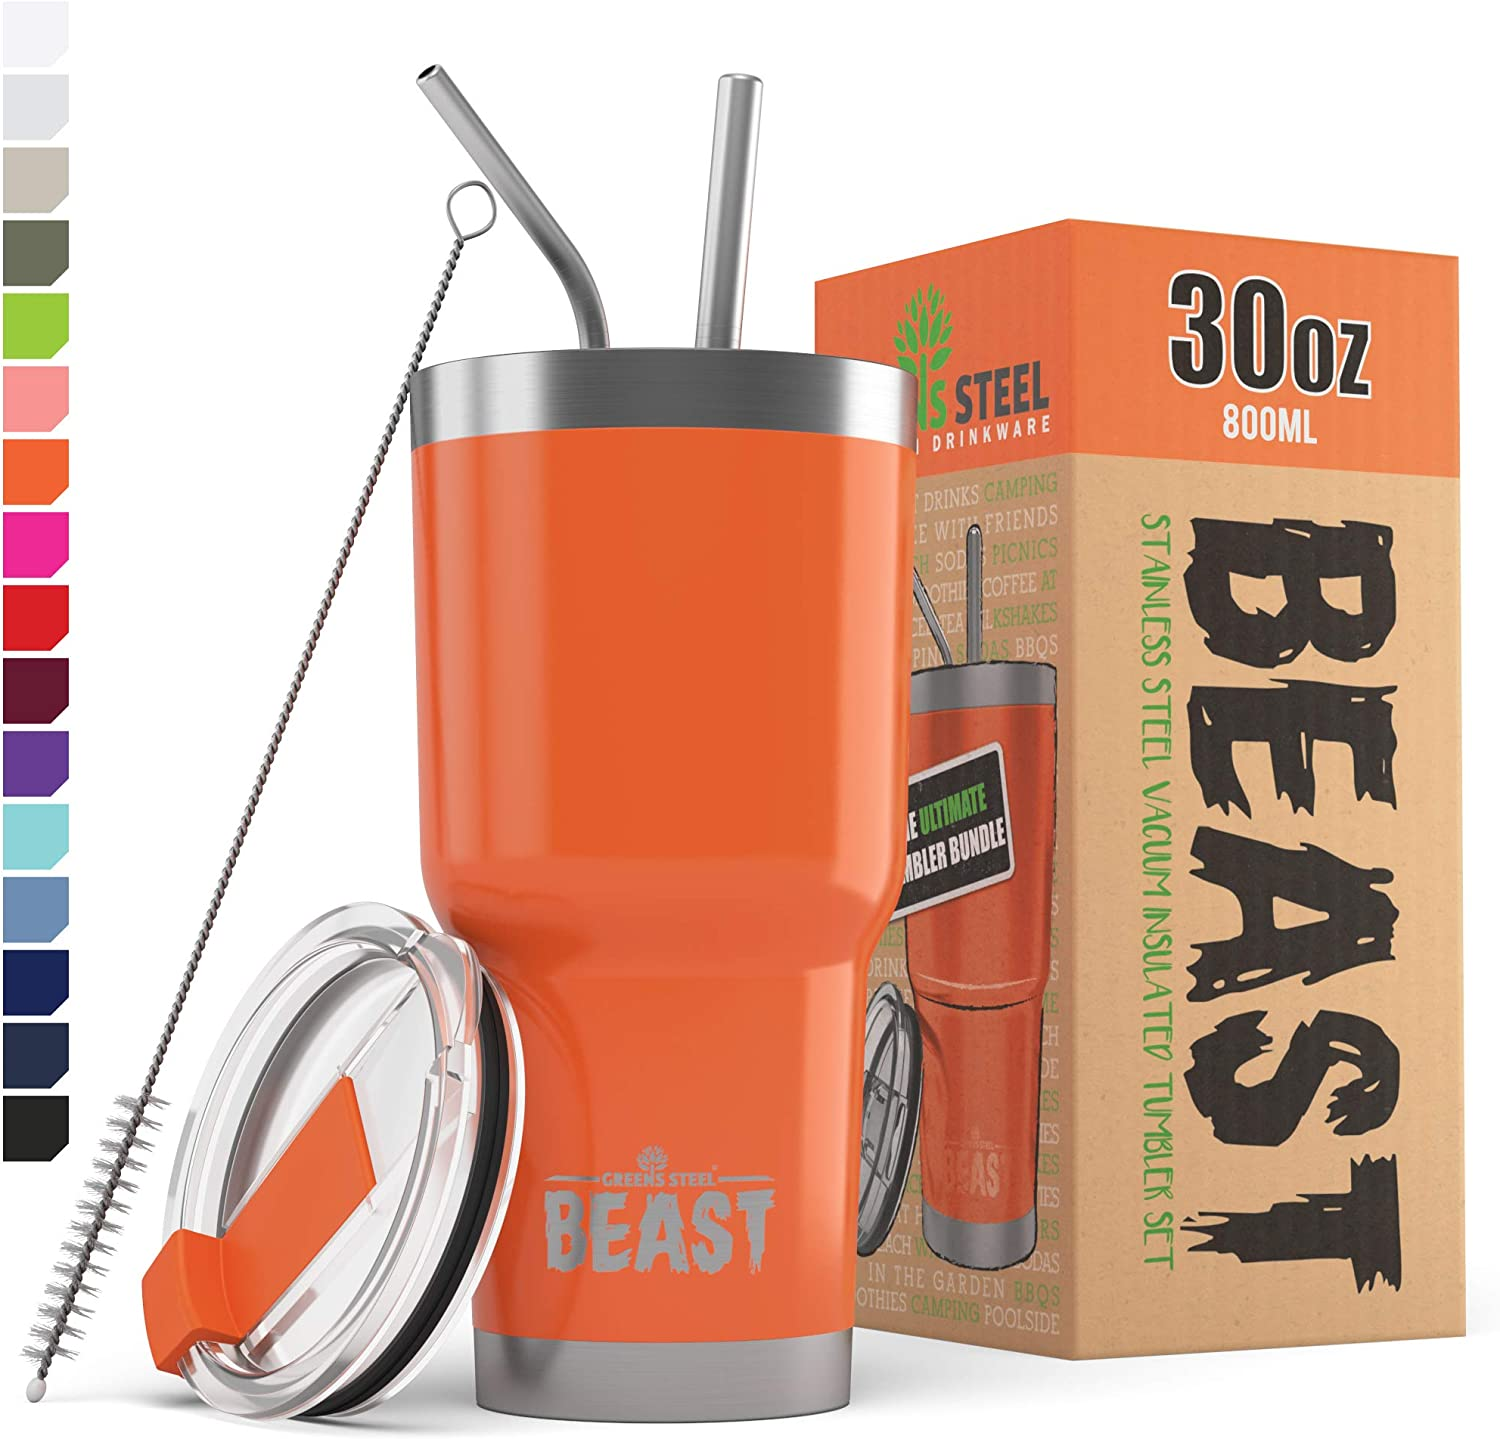 BEAST 30 oz Orange Tumbler - Stainless Steel Vacuum Insulated Coffee Ice Cup Double Wall Travel Flask